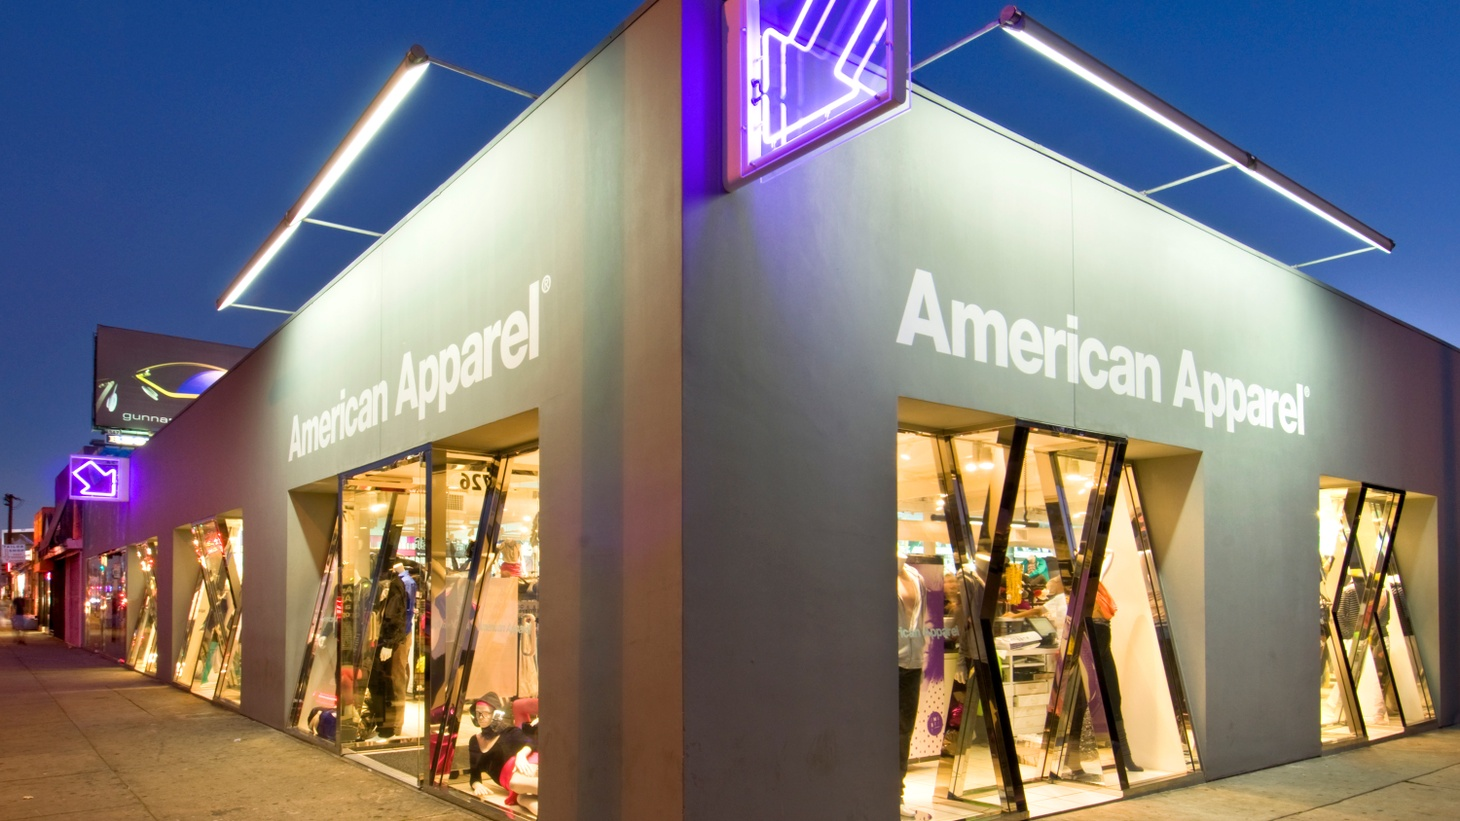 """Dov Charney demonstrated that clothes """"Made in America"""" could be hip and trendy at the same time making big money. His largely immigrant workforce worked in """"no-sweatshop conditions"""" in downtown LA. When the magic ended is a matter of legal dispute, but less than a year since Charney was fired for alleged sexual harassment, American Apparel now says bankruptcy may be near. What's at stake for the garment industry in Southern California?"""